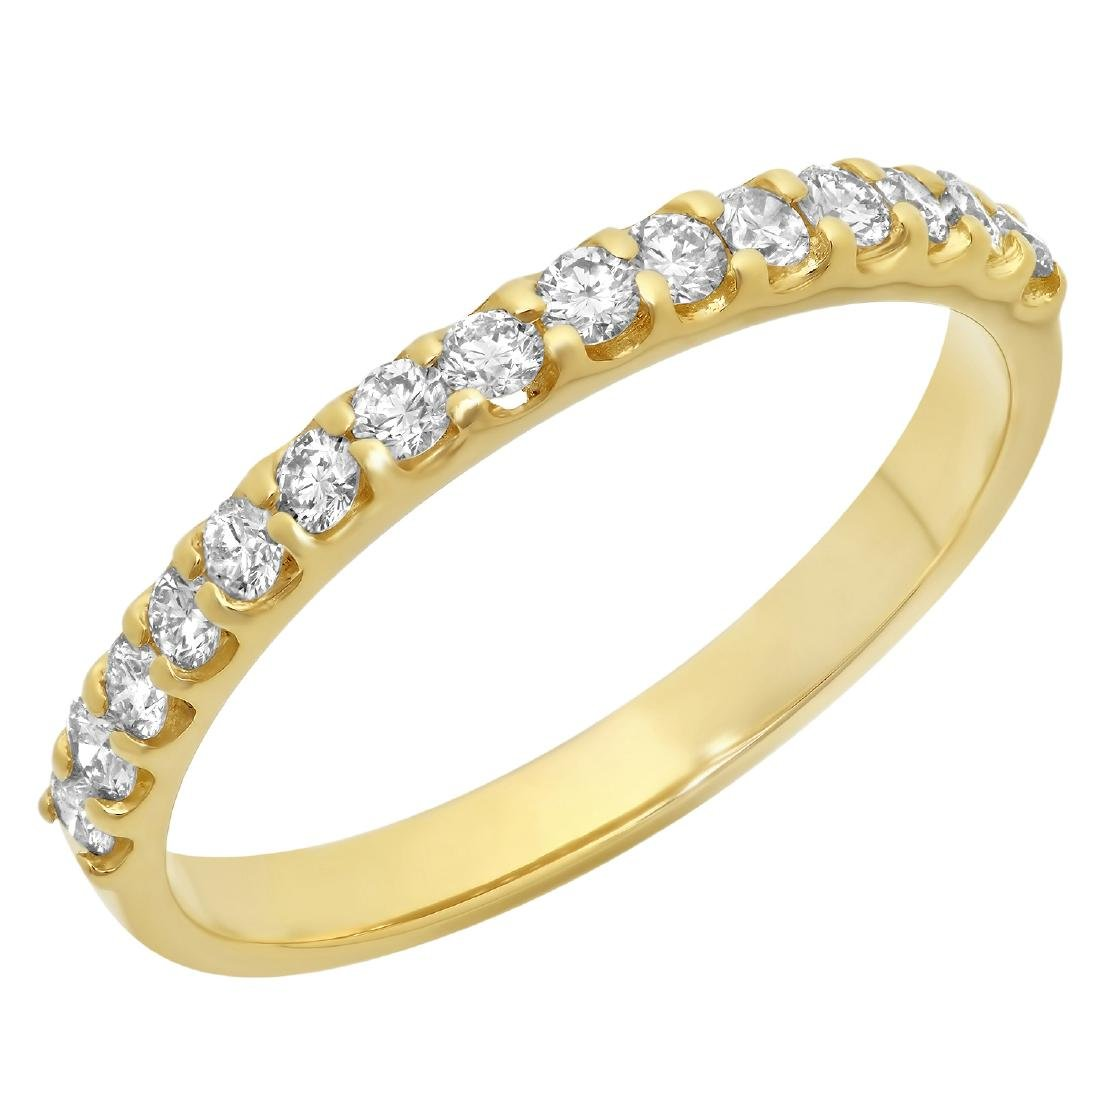 0.35 Carat Natural Diamond 18K Solid Yellow Gold Ring